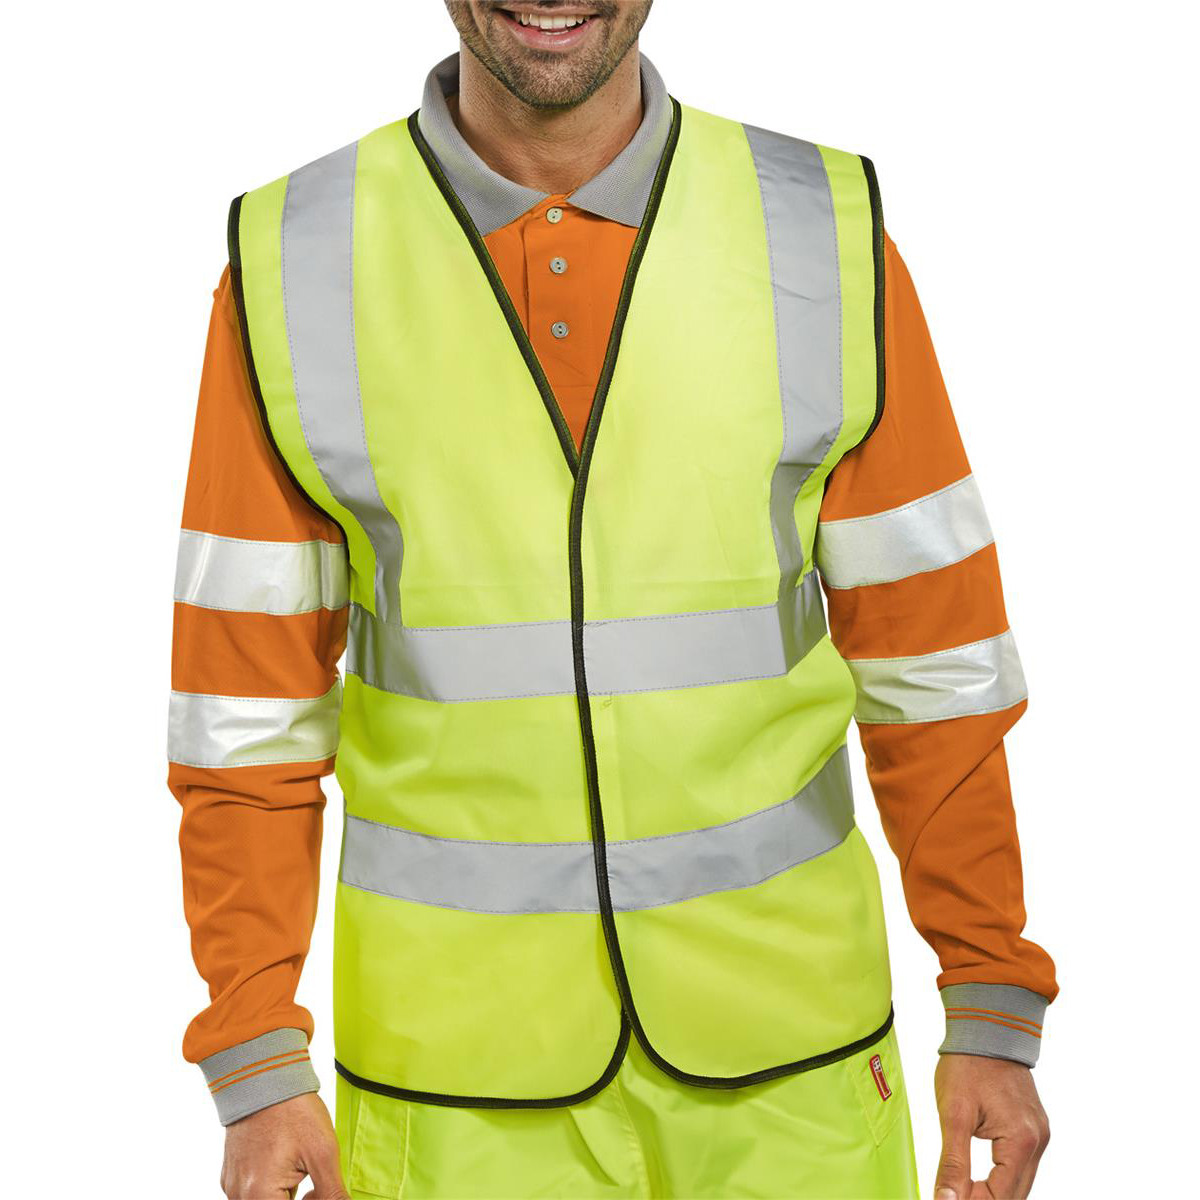 High Visibility Bseen High Visibility Waistcoat Full App 2XL Yellow/Black Piping Ref WCENGXXL *Up to 3 Day Leadtime*